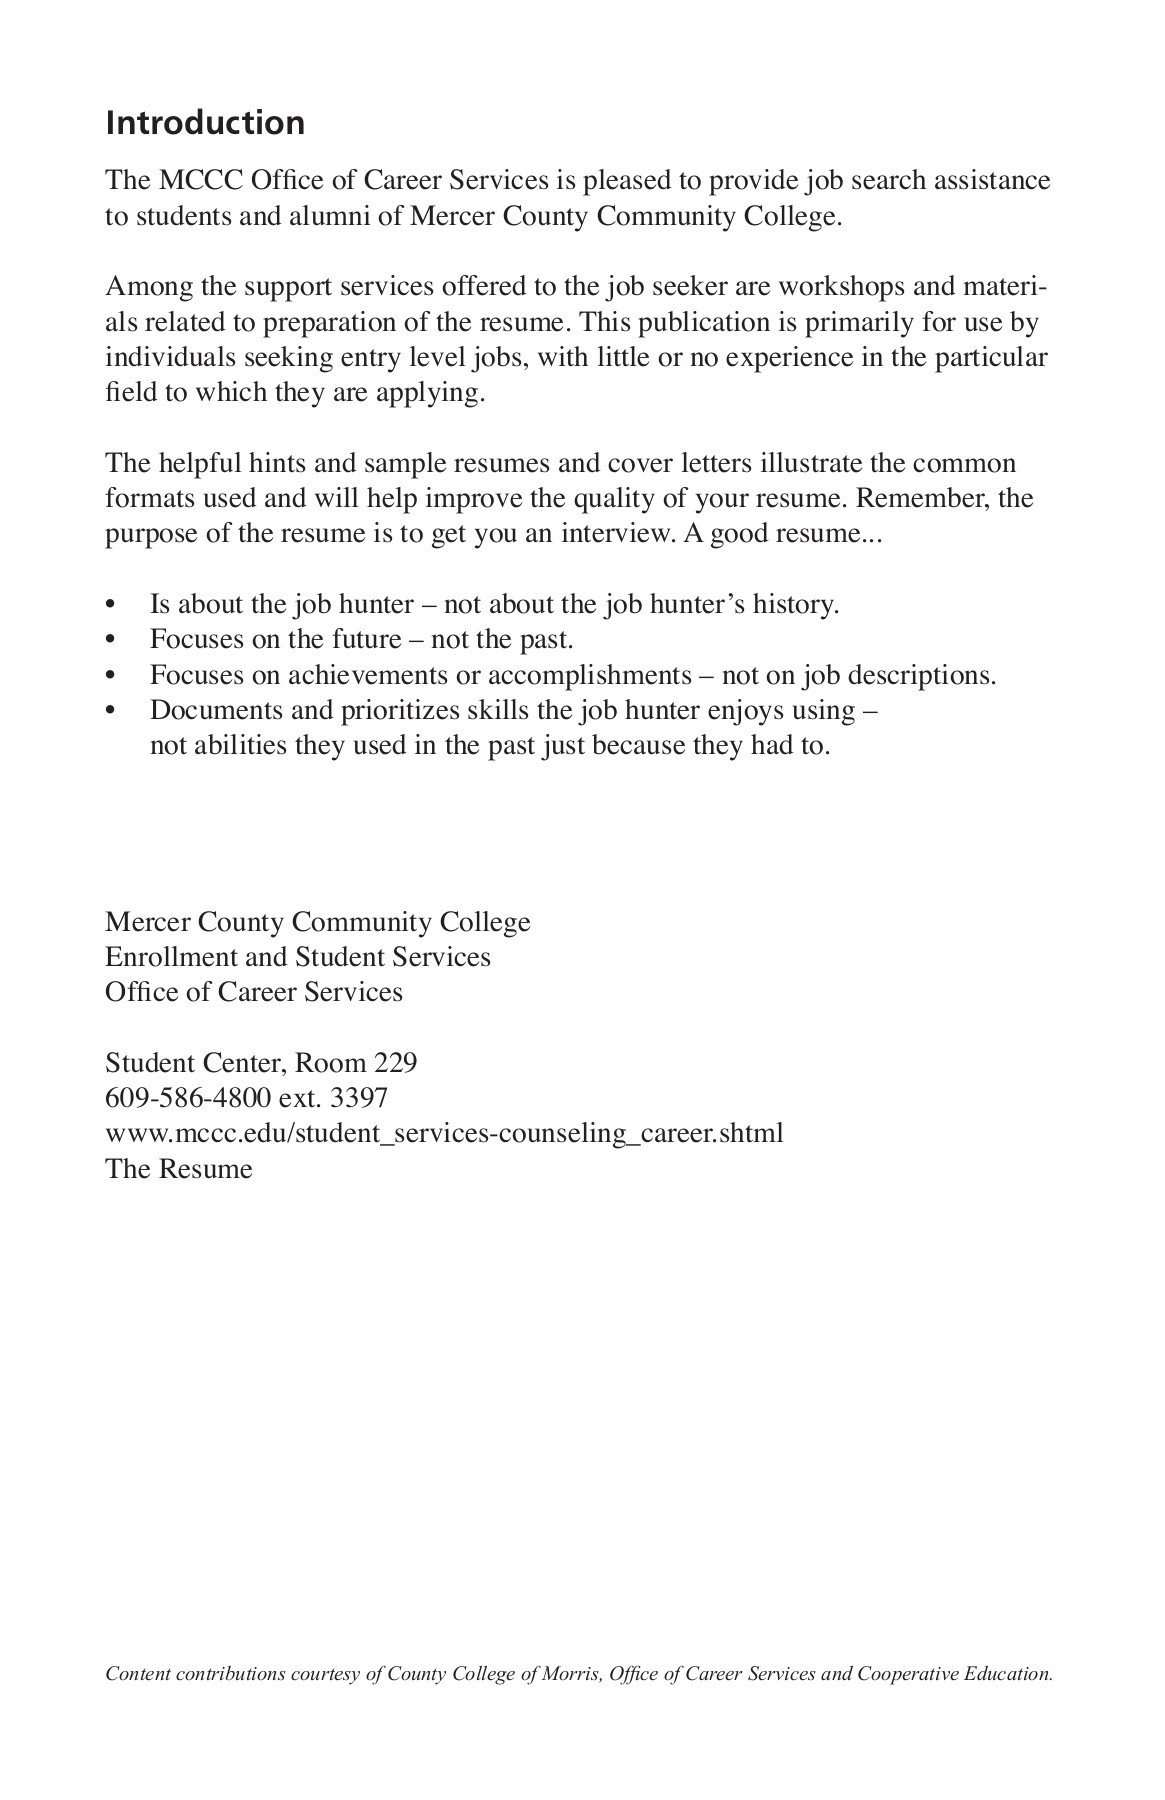 Hints For Good Resumes The Resume Mercer County Community College Pages 1 28 Text